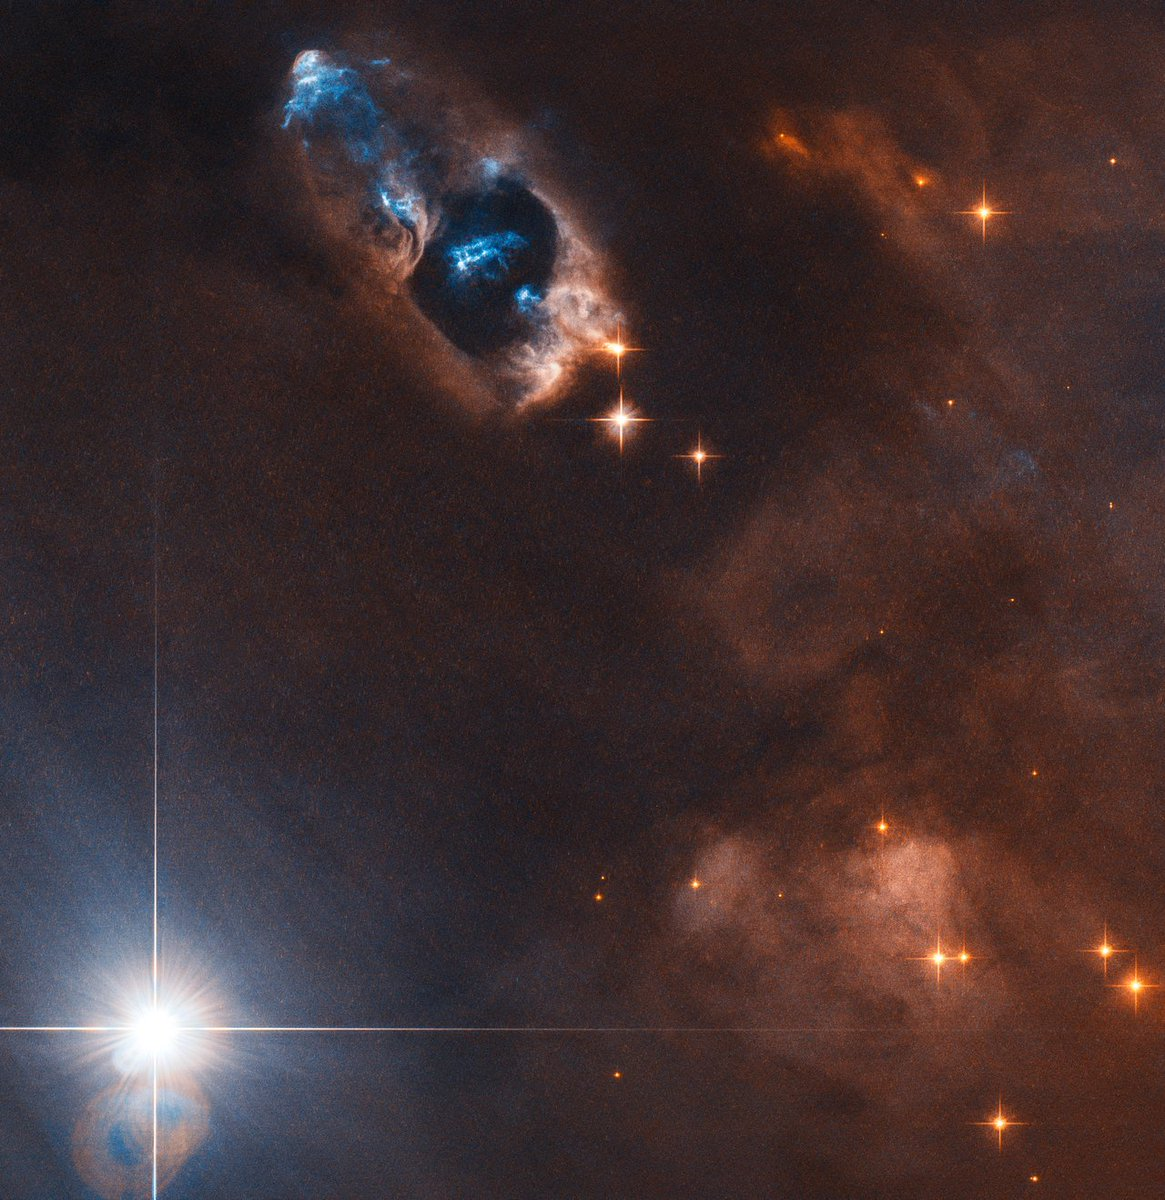 The smoking gun of a newborn star was captured by Hubble. Find out what the story behind this image is at the link below. Credit: @esa / @HUBBLE_space / @NASA K. Stapelfeldt  https://t.co/YFjIBxawLk